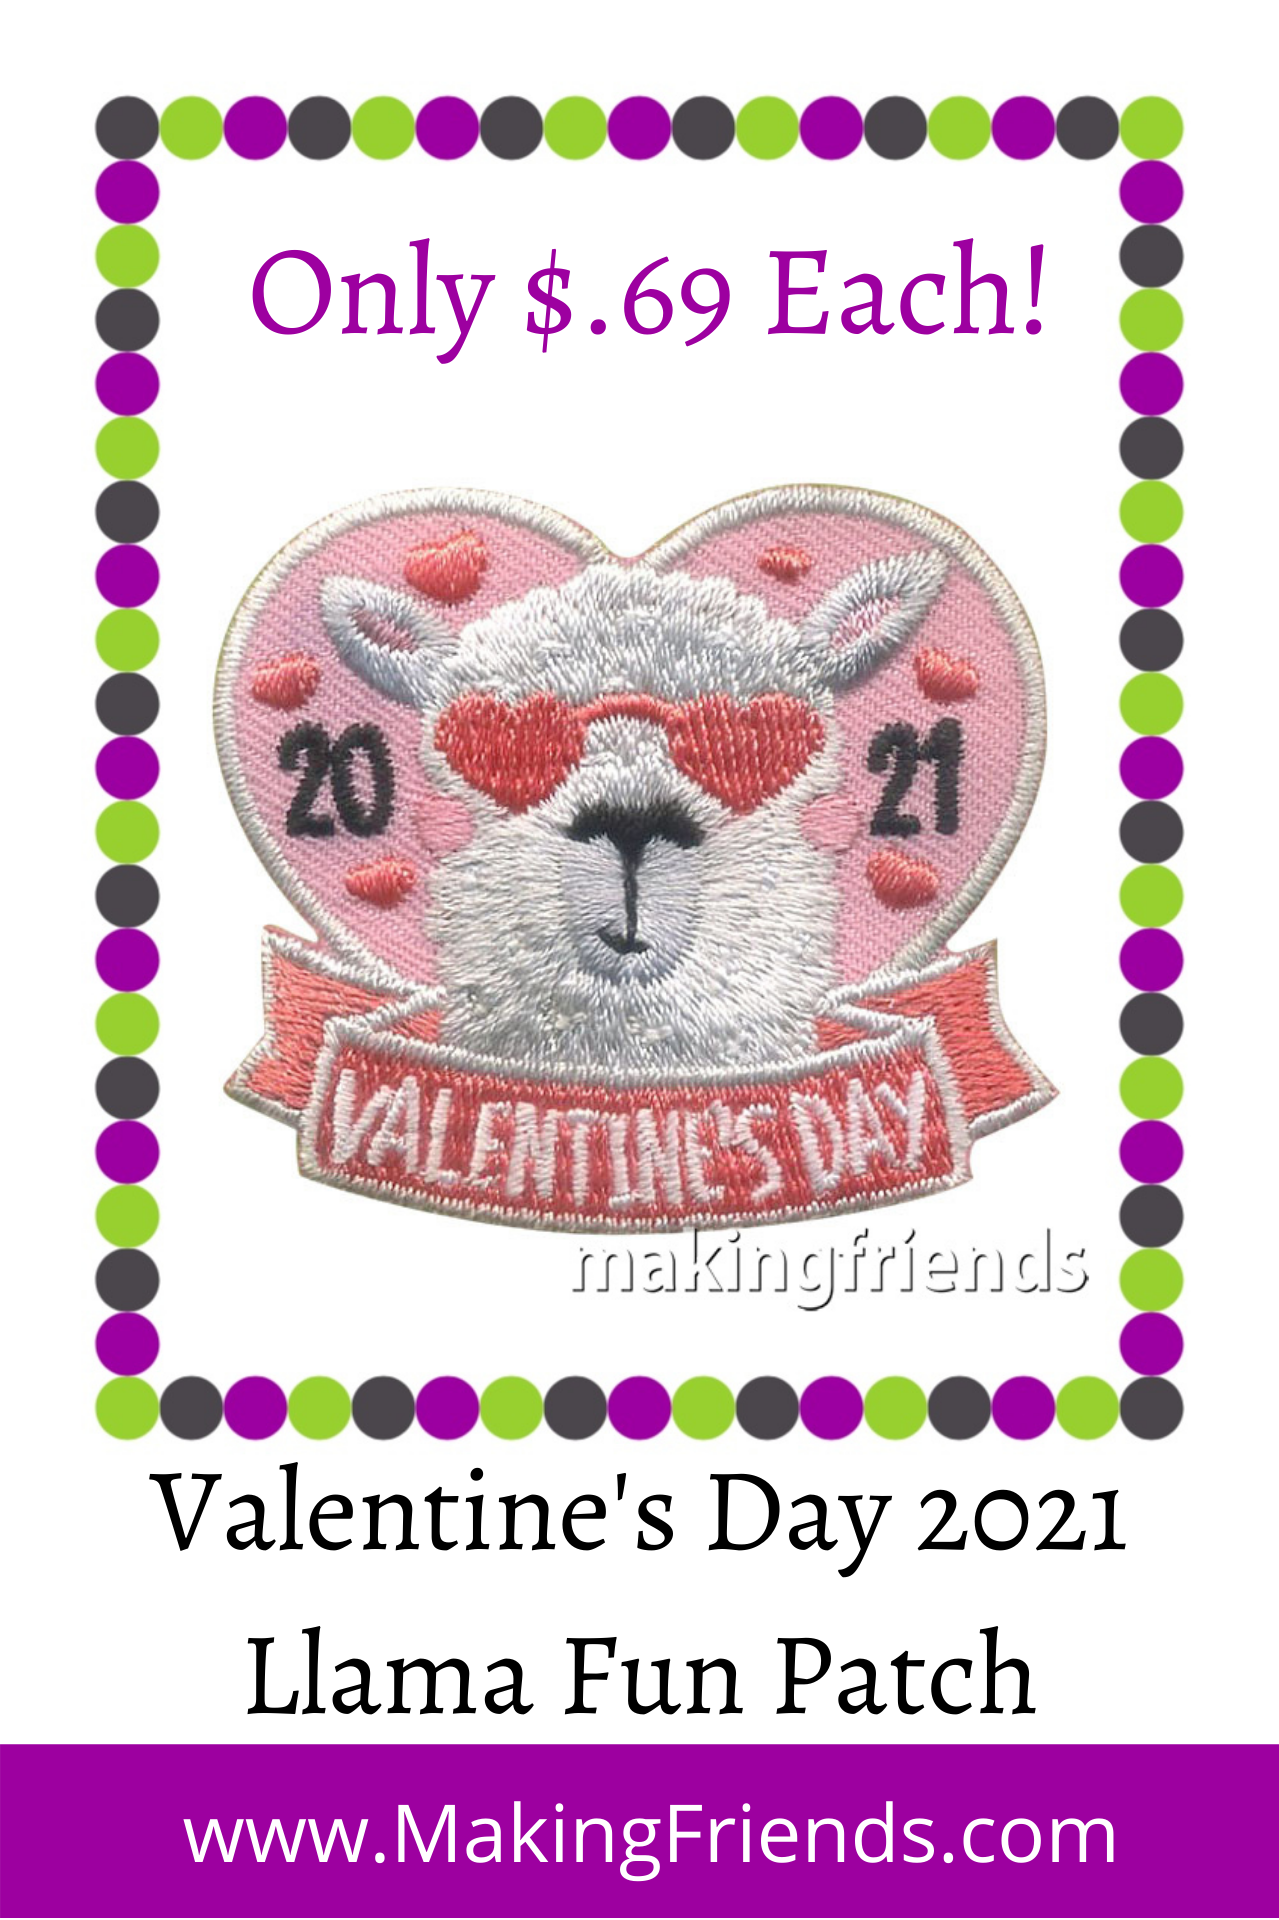 Get some Llama love on Valentine's Day with our 2021 fun Patch! Only $.69 each with free shipping available! #makingfriends #llama #valentines #2021 #valentinesday #love #valentinespatch #funpatch #girlscoutpatch #gspatches via @gsleader411